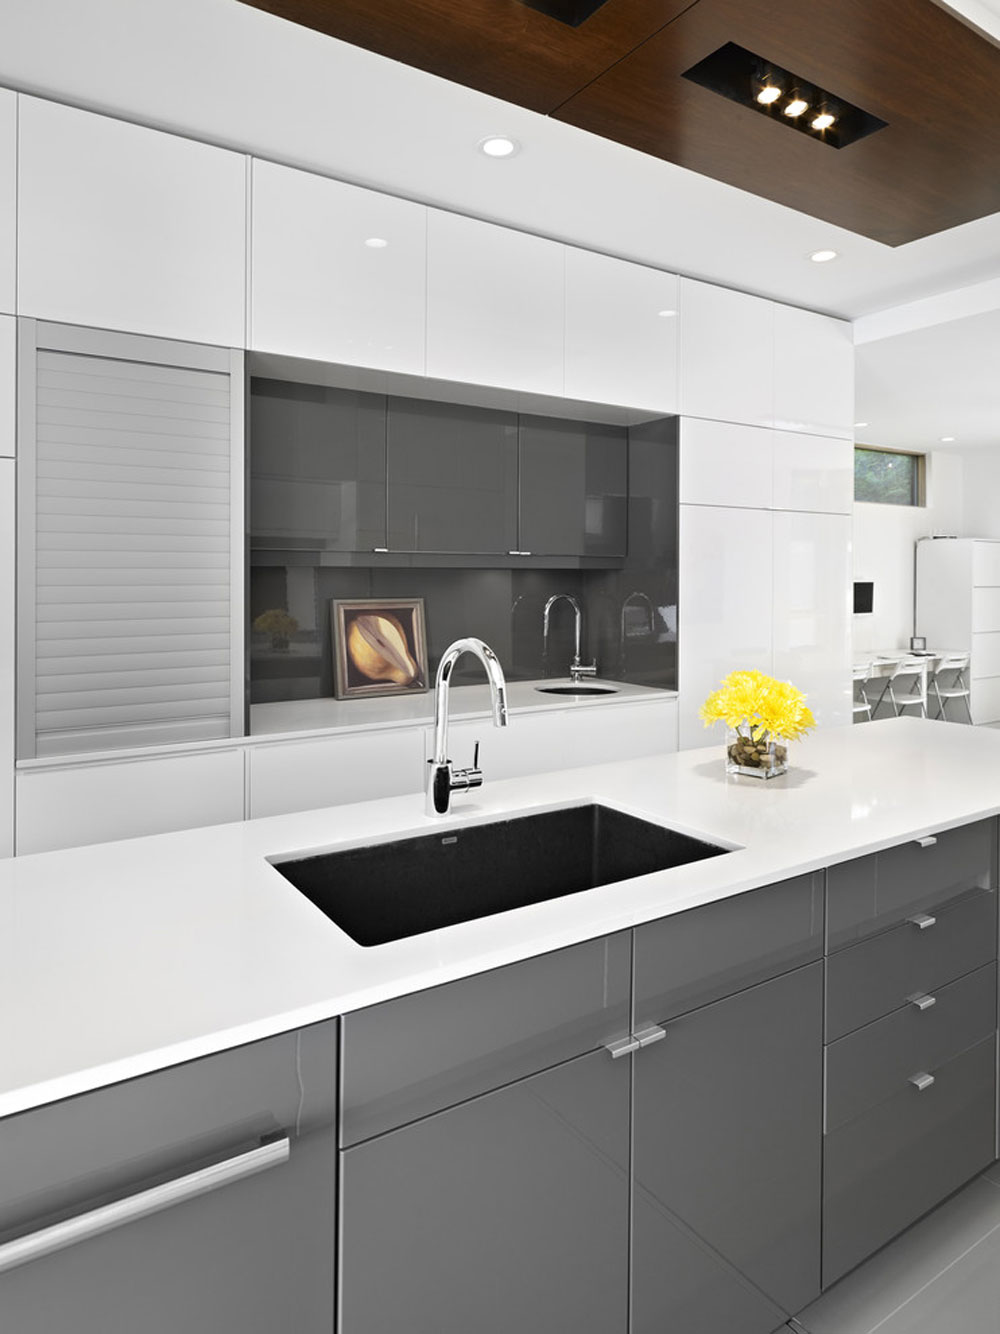 LG-House-Kitchen-by-Thirdstone-Inc.-2 metal kitchen cabinets: stainless steel furniture for your kitchen